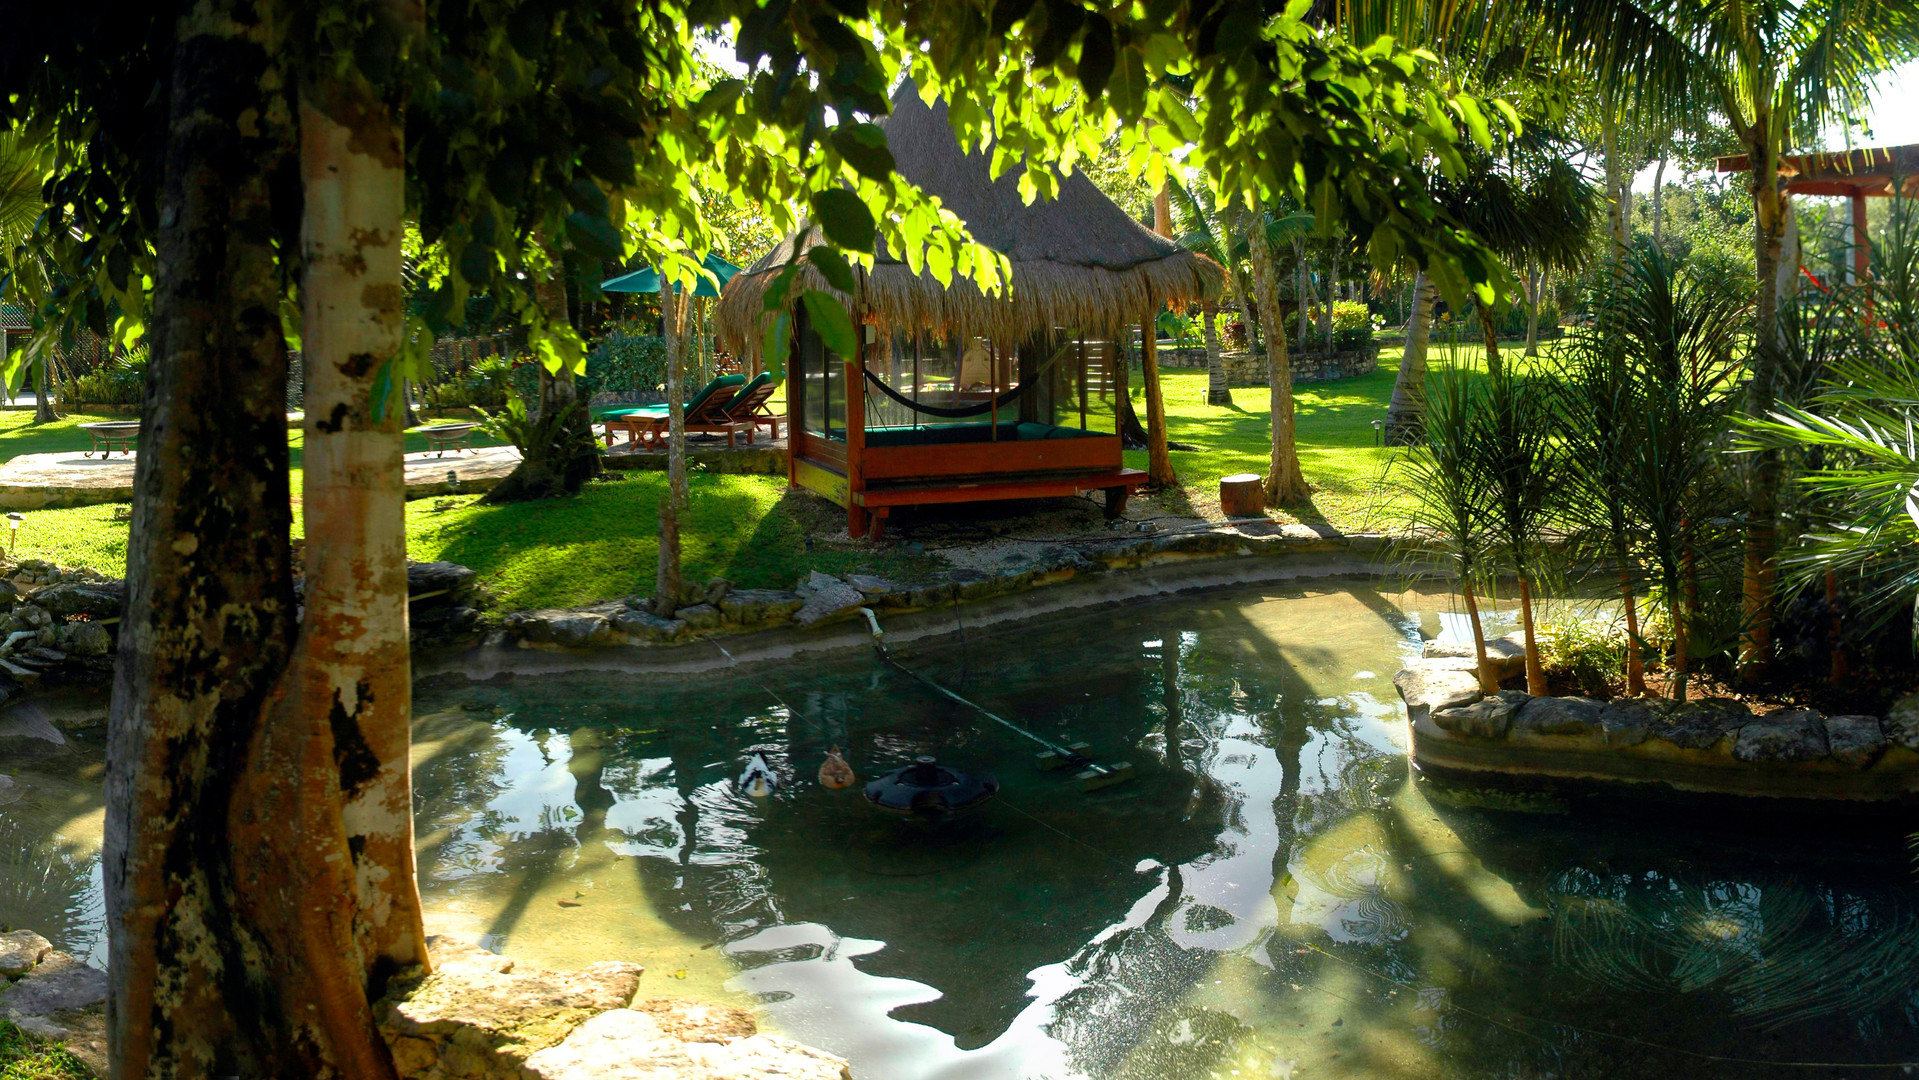 Ducks huts lake.jpg Pano Pool Palapa to